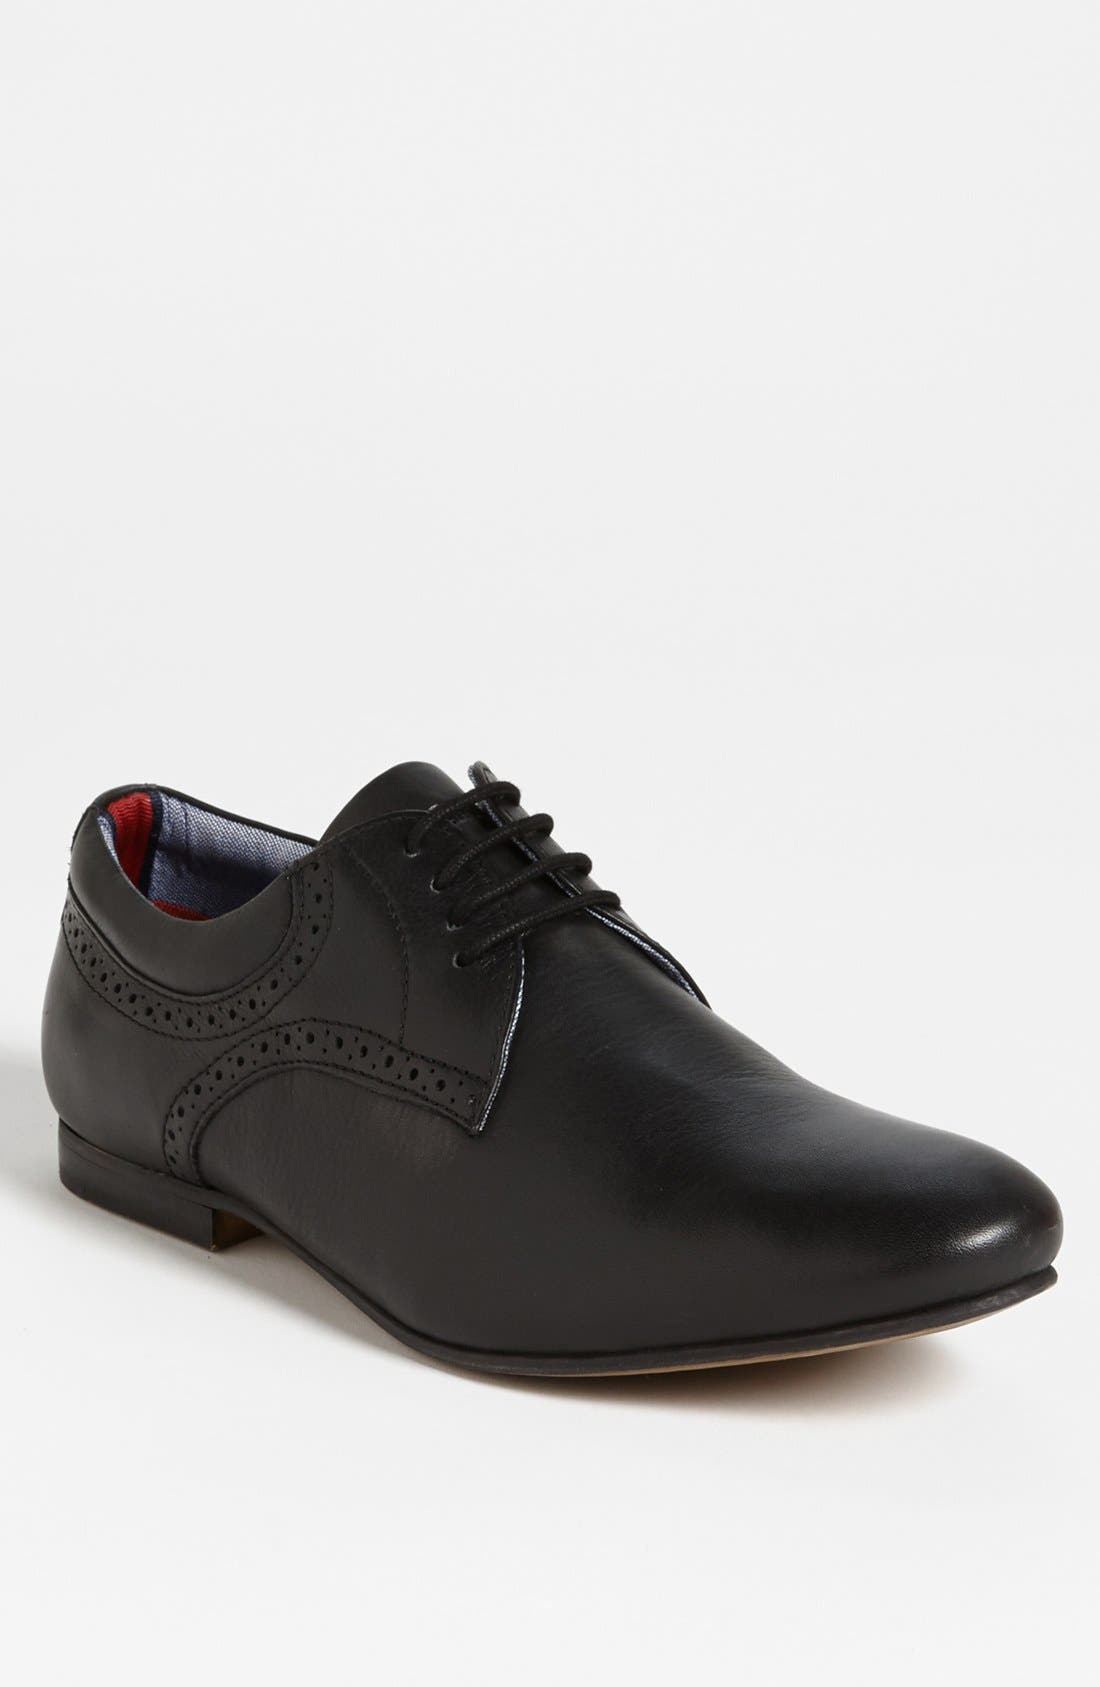 Main Image - Ben Sherman 'Vim' Plain Toe Derby